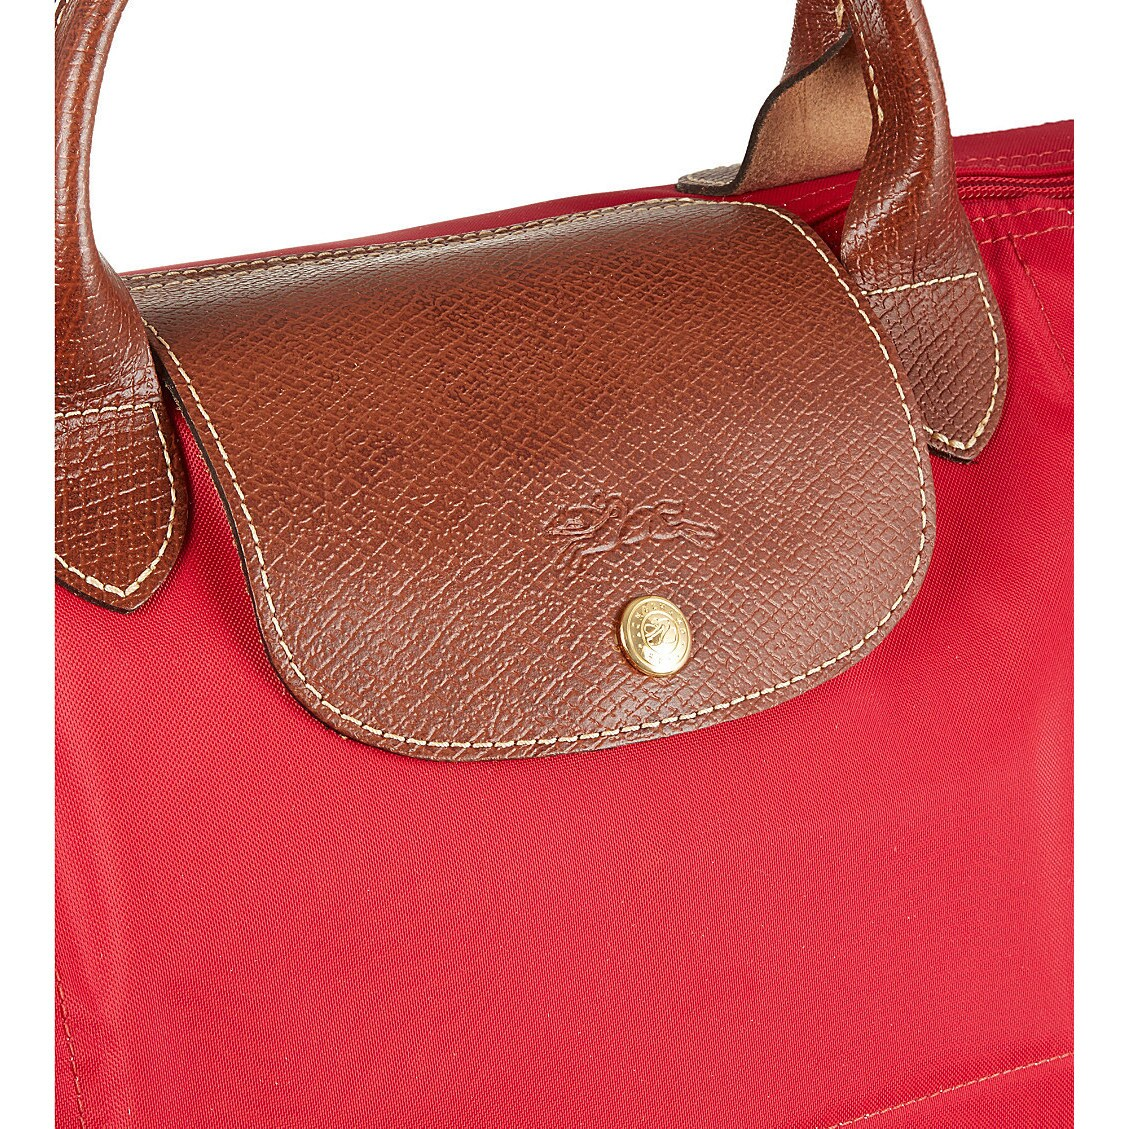 e7bca14d9ff4 Shop Longchamp Le Pliage Garance Red Nylon Large Foldable Tote Bag - Free  Shipping Today - Overstock - 13415844